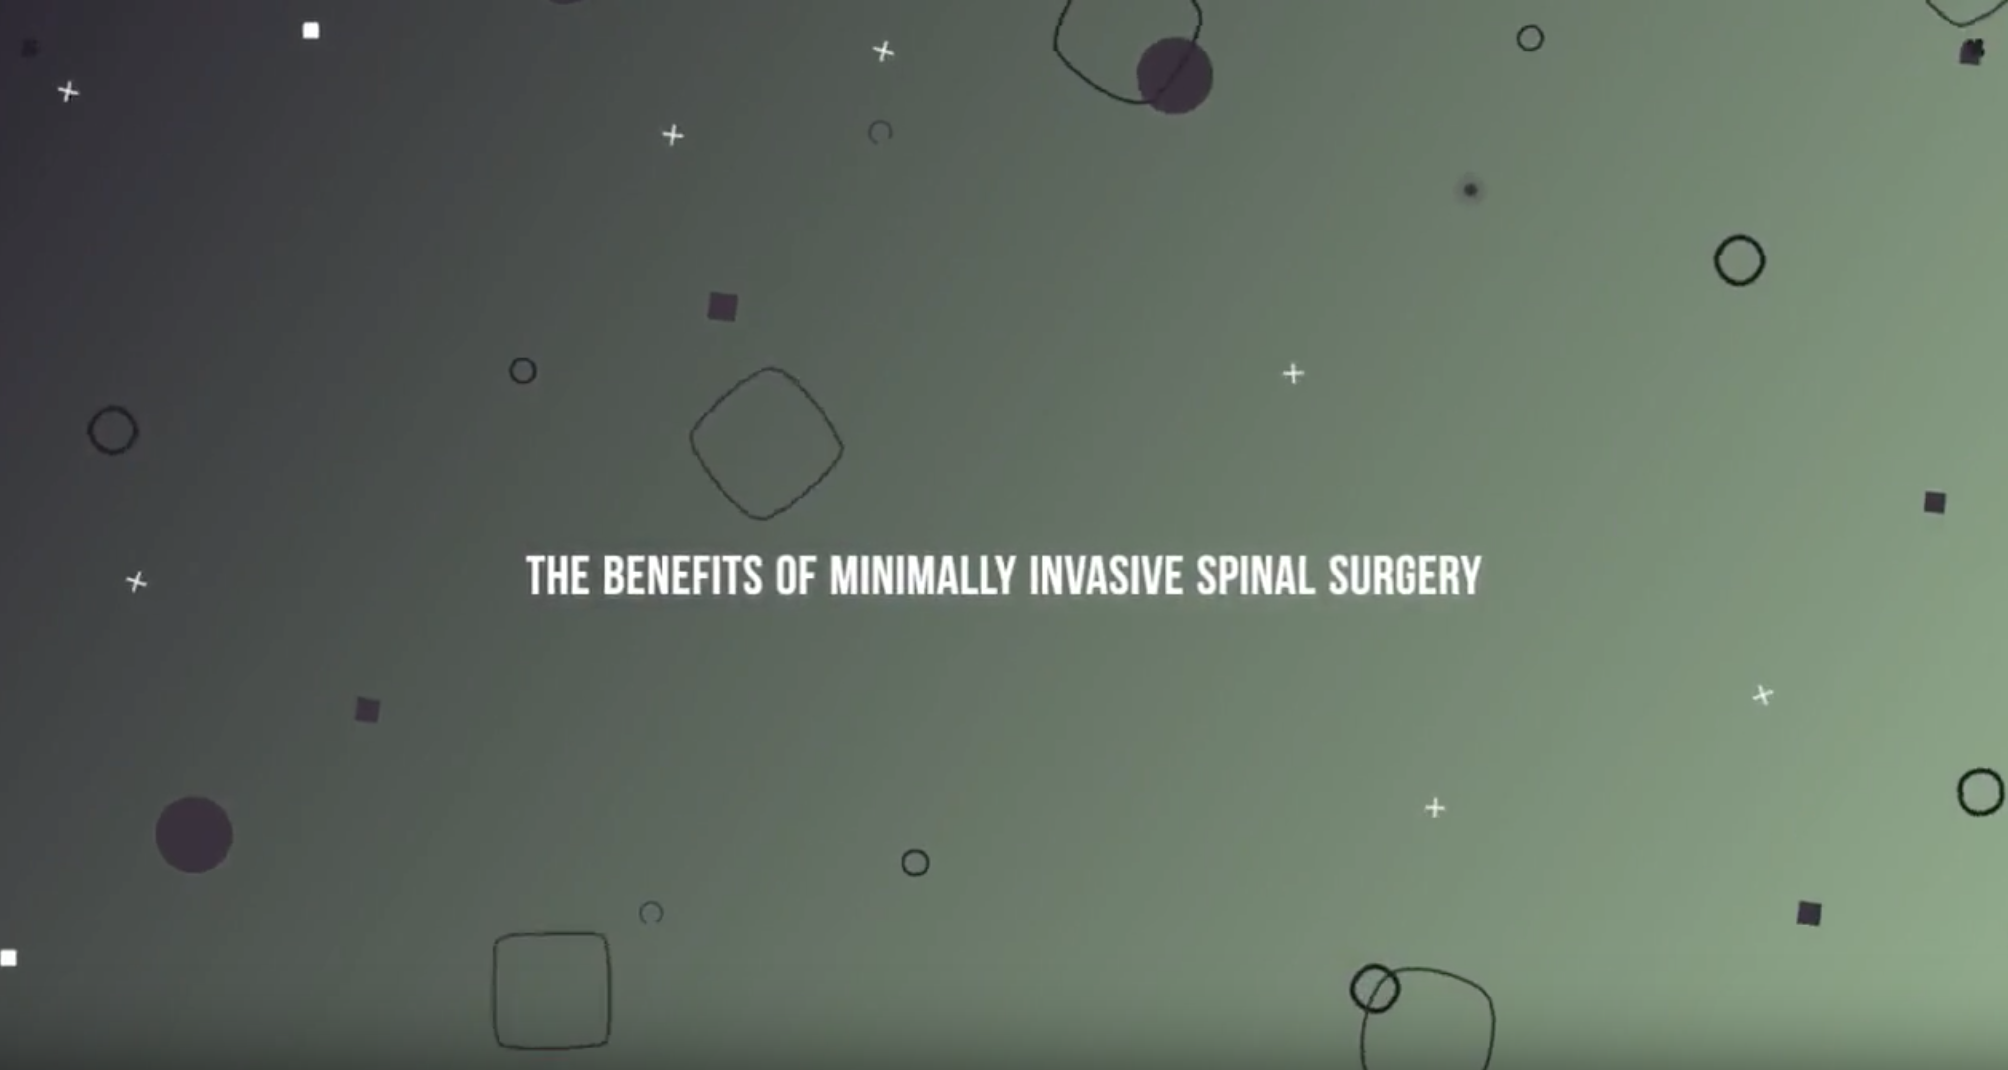 Benefits of Minimally Invasive Spinal Surgery